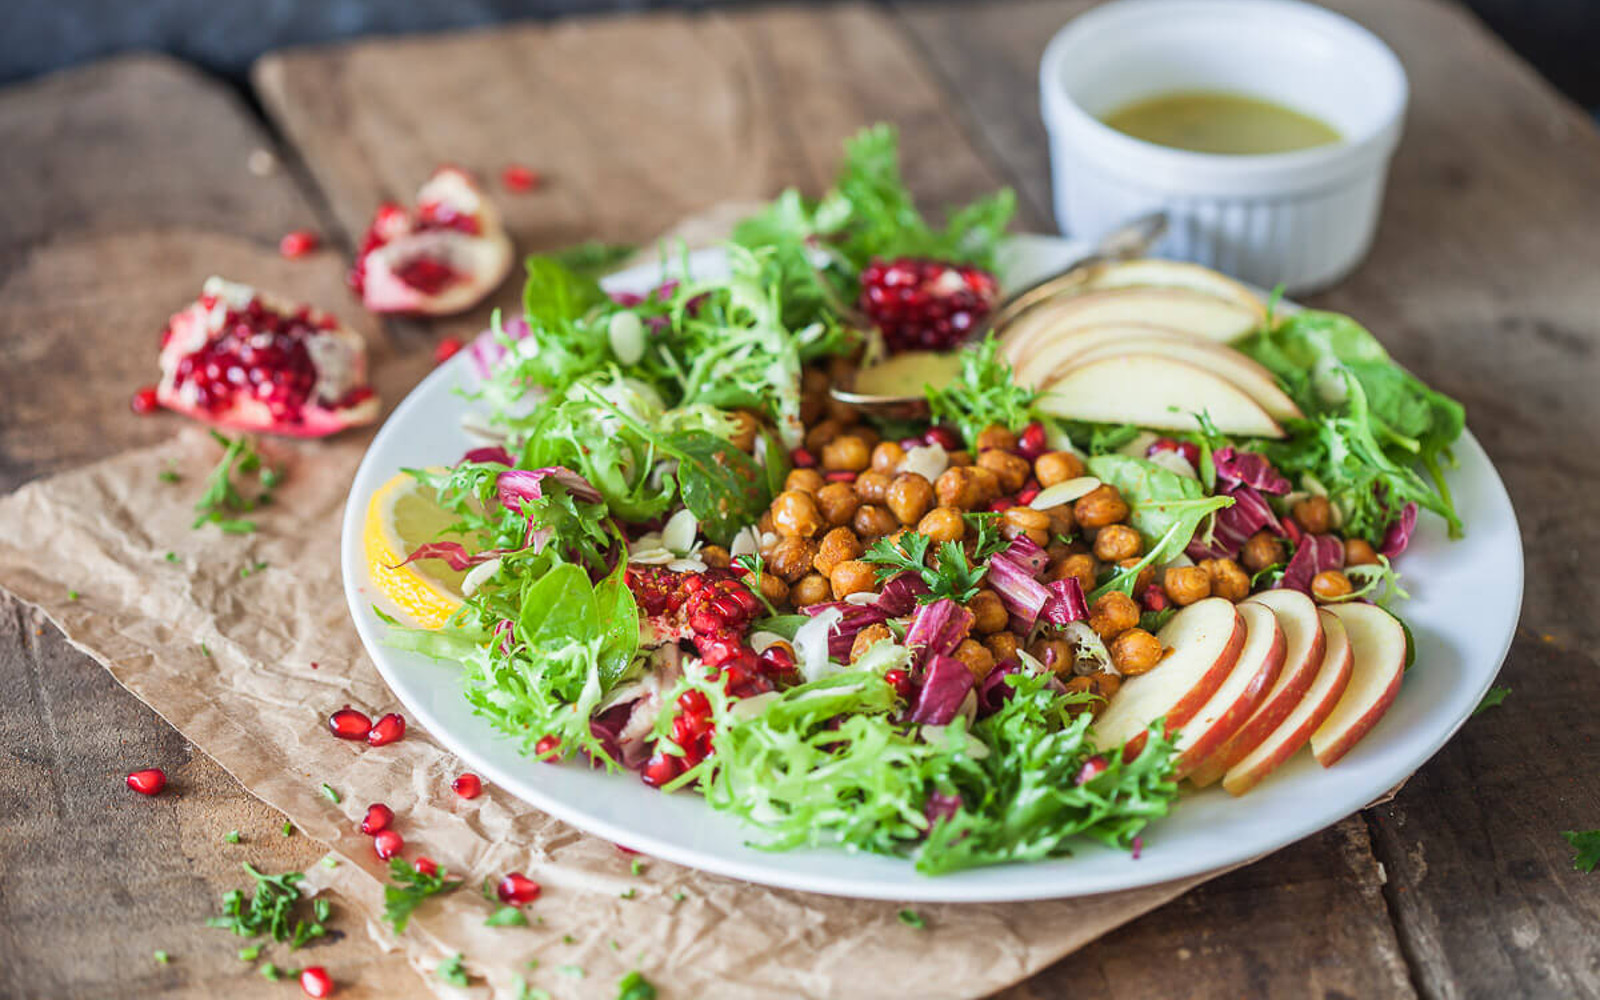 Vegan Grain-Free Endive Salad With Crispy Chickpeas